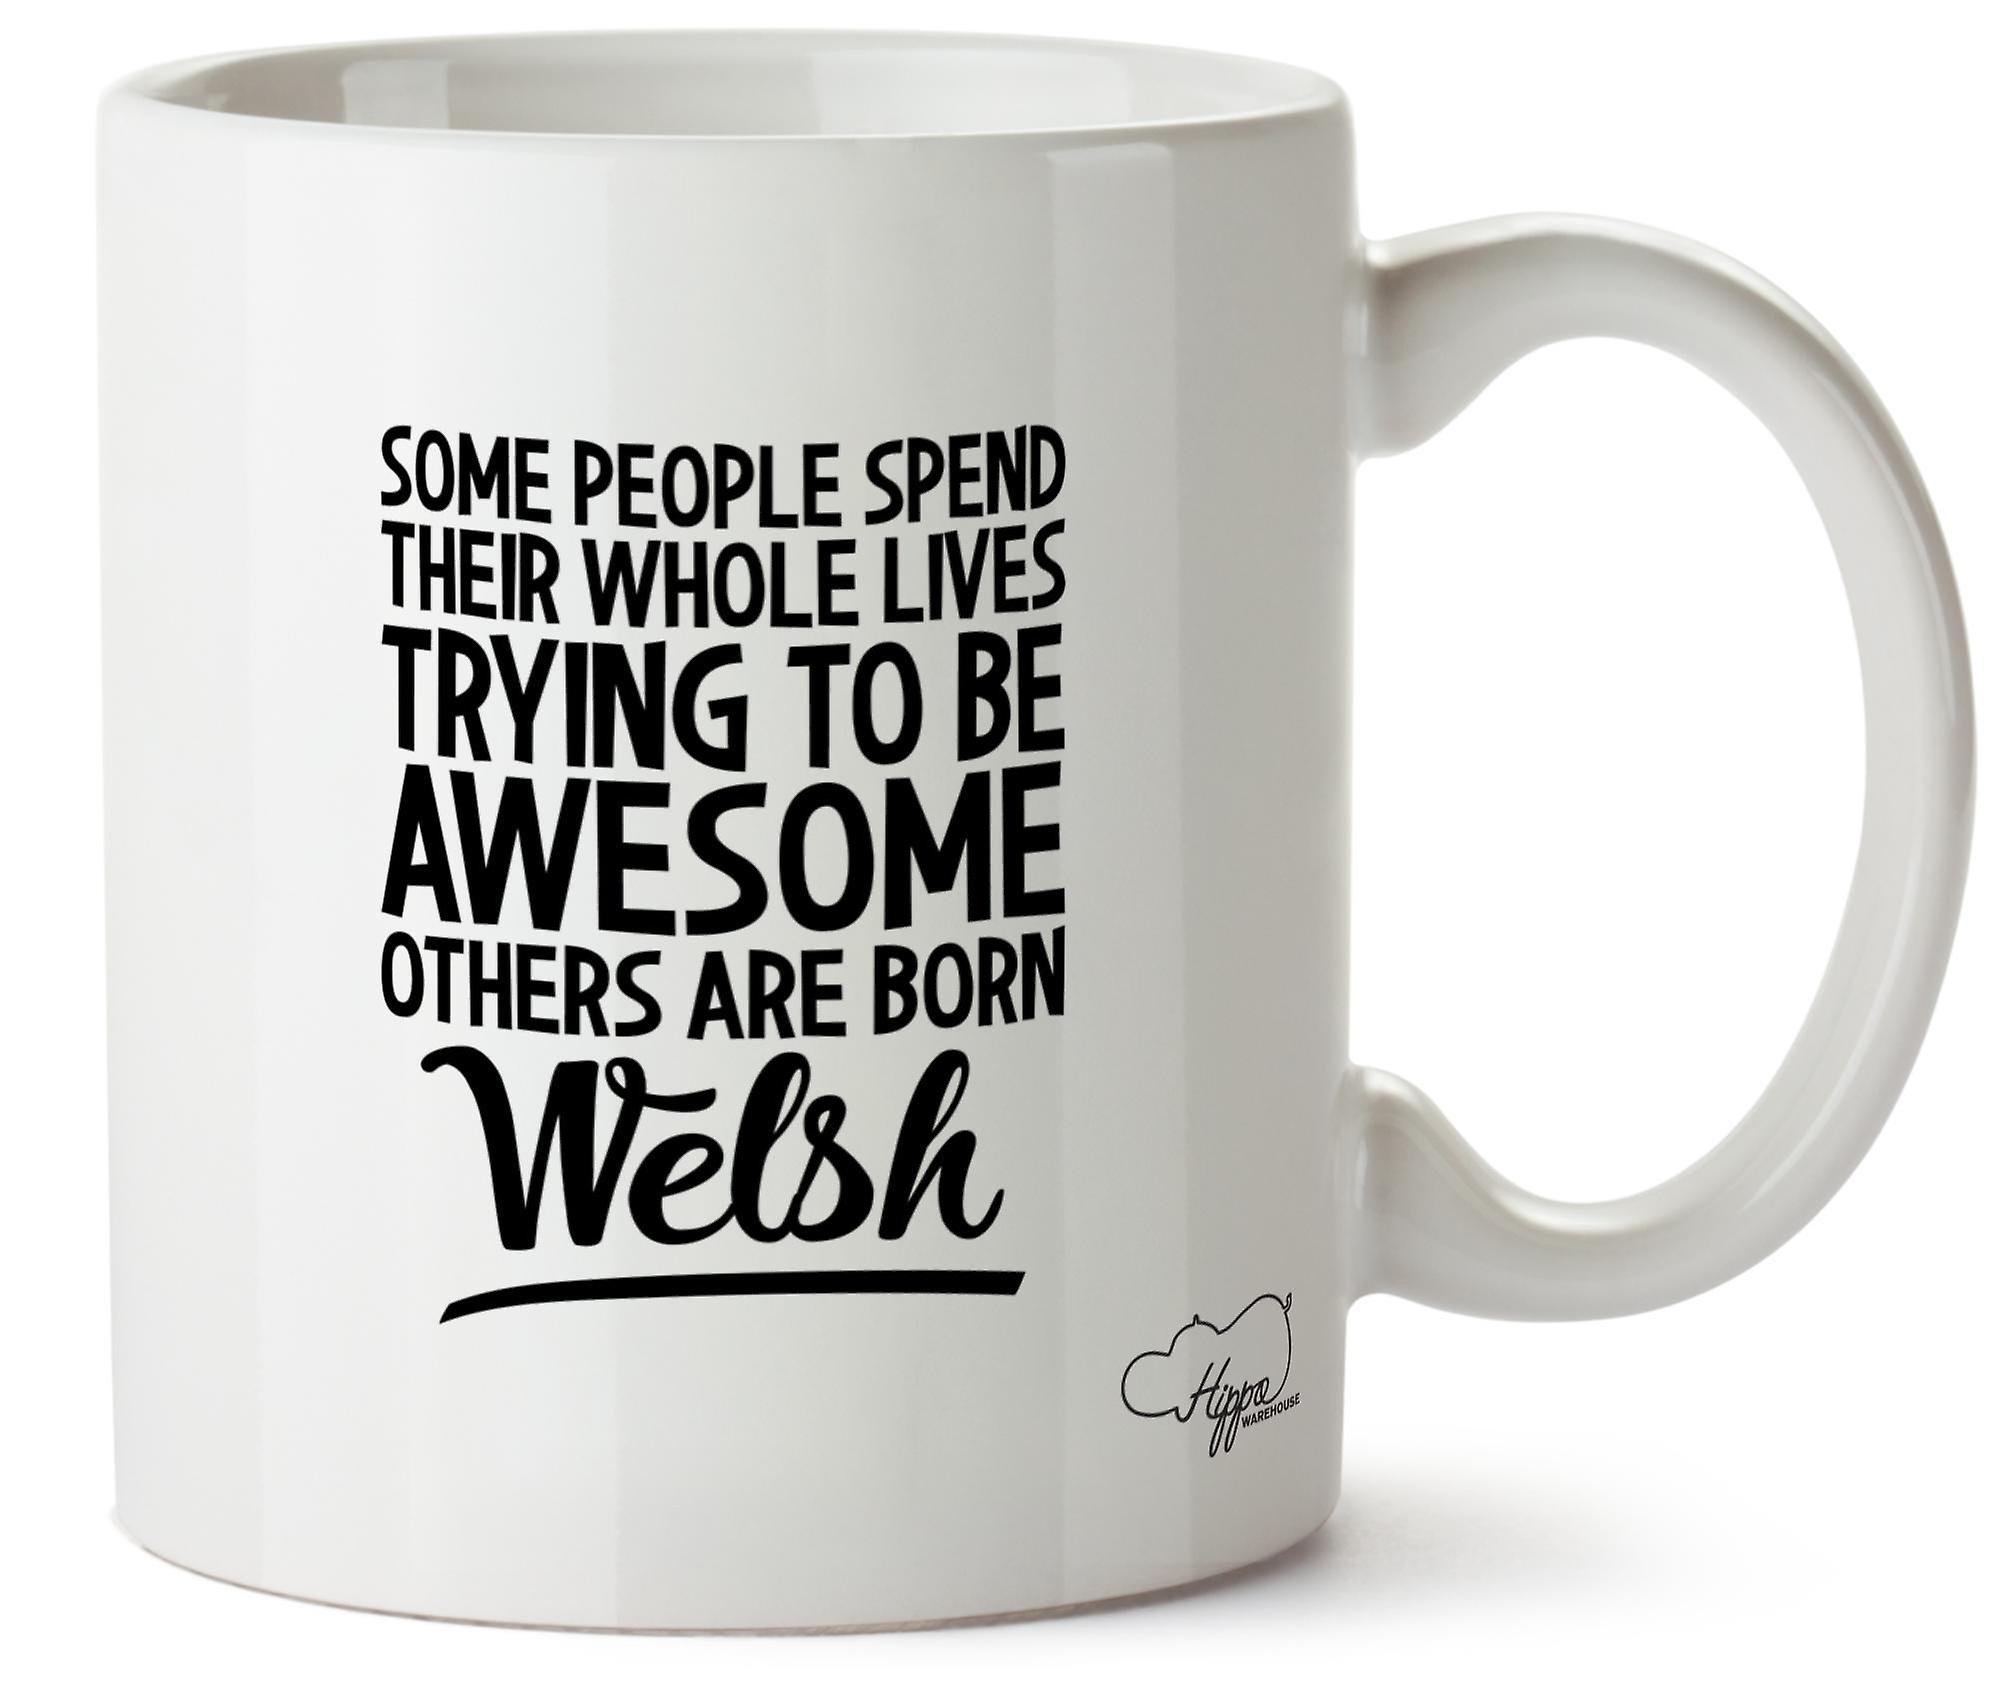 Hippowarehouse Some People Spend Their Whole Lives Trying To Be Awesome Others Are Born Welsh Printed Mug Cup Ceramic 10oz